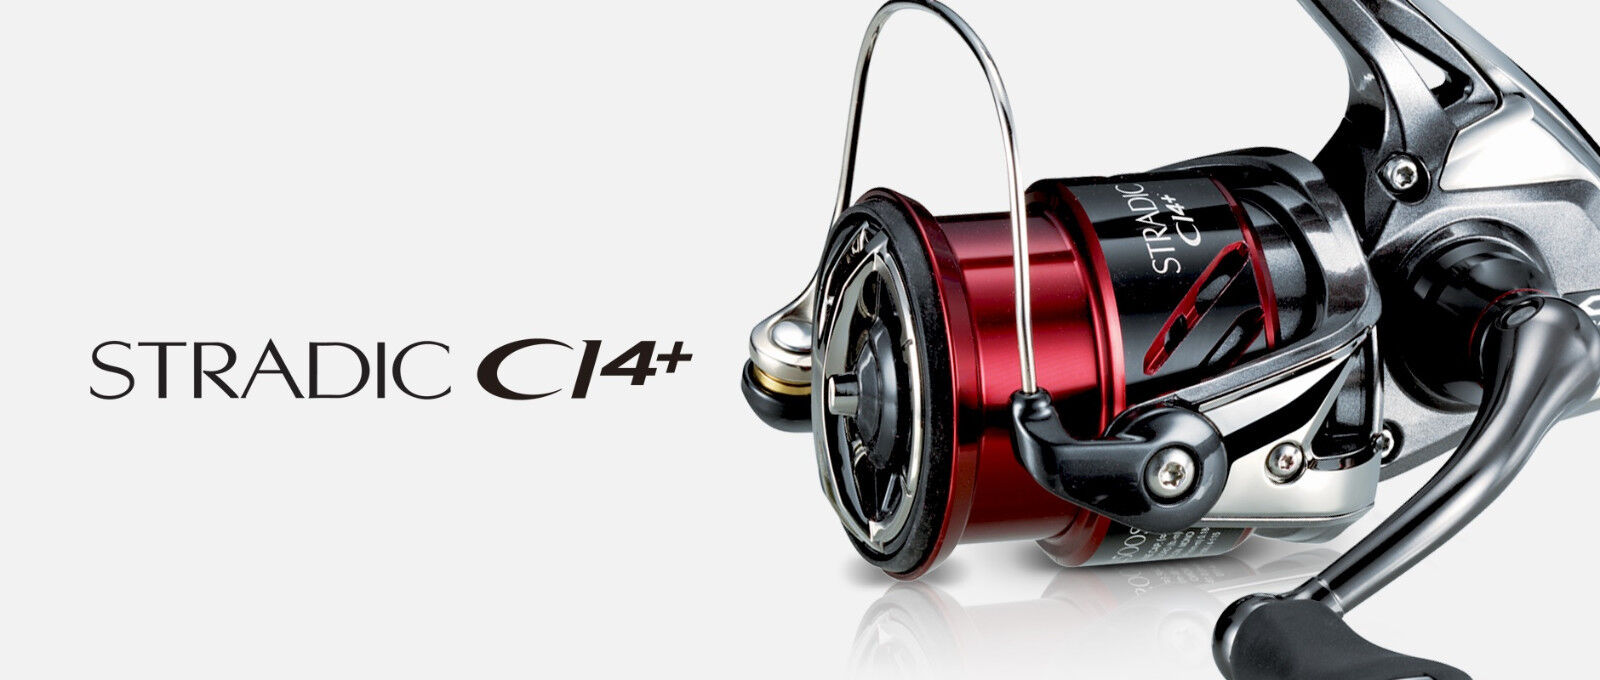 Shimano Stradic CI4+ FB Rolle Reel Spinrolle Angelrolle Stationärrolle Spinrolle Reel 696377